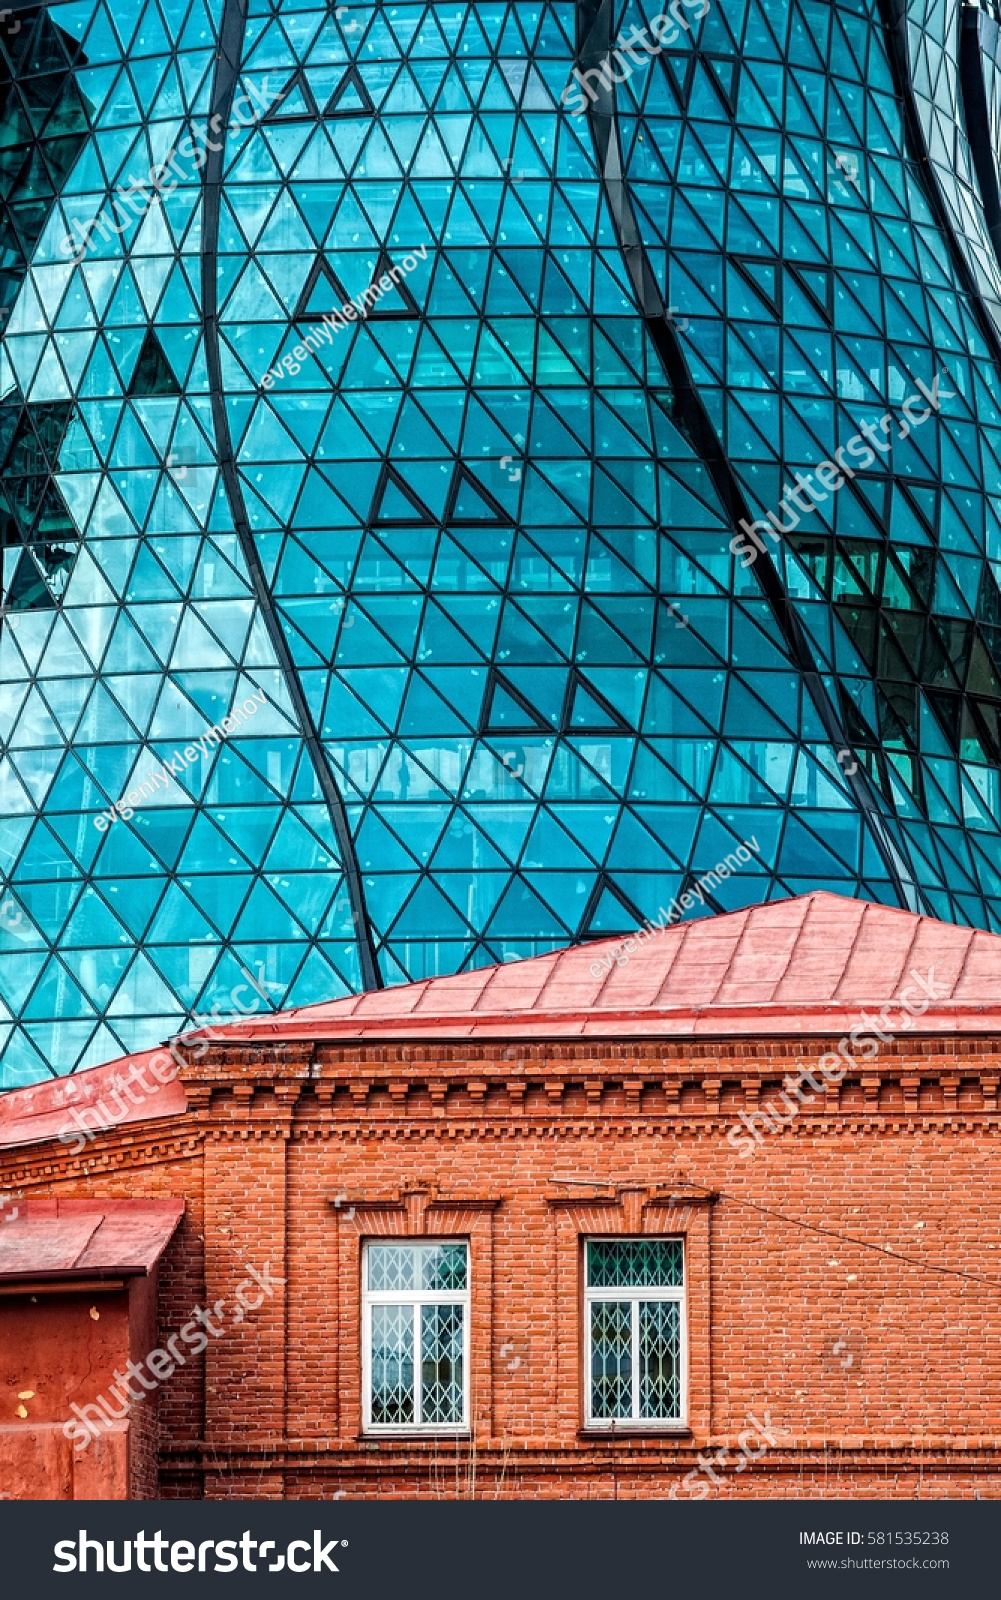 Online image photo editor shutterstock editor for Brick architecture styles